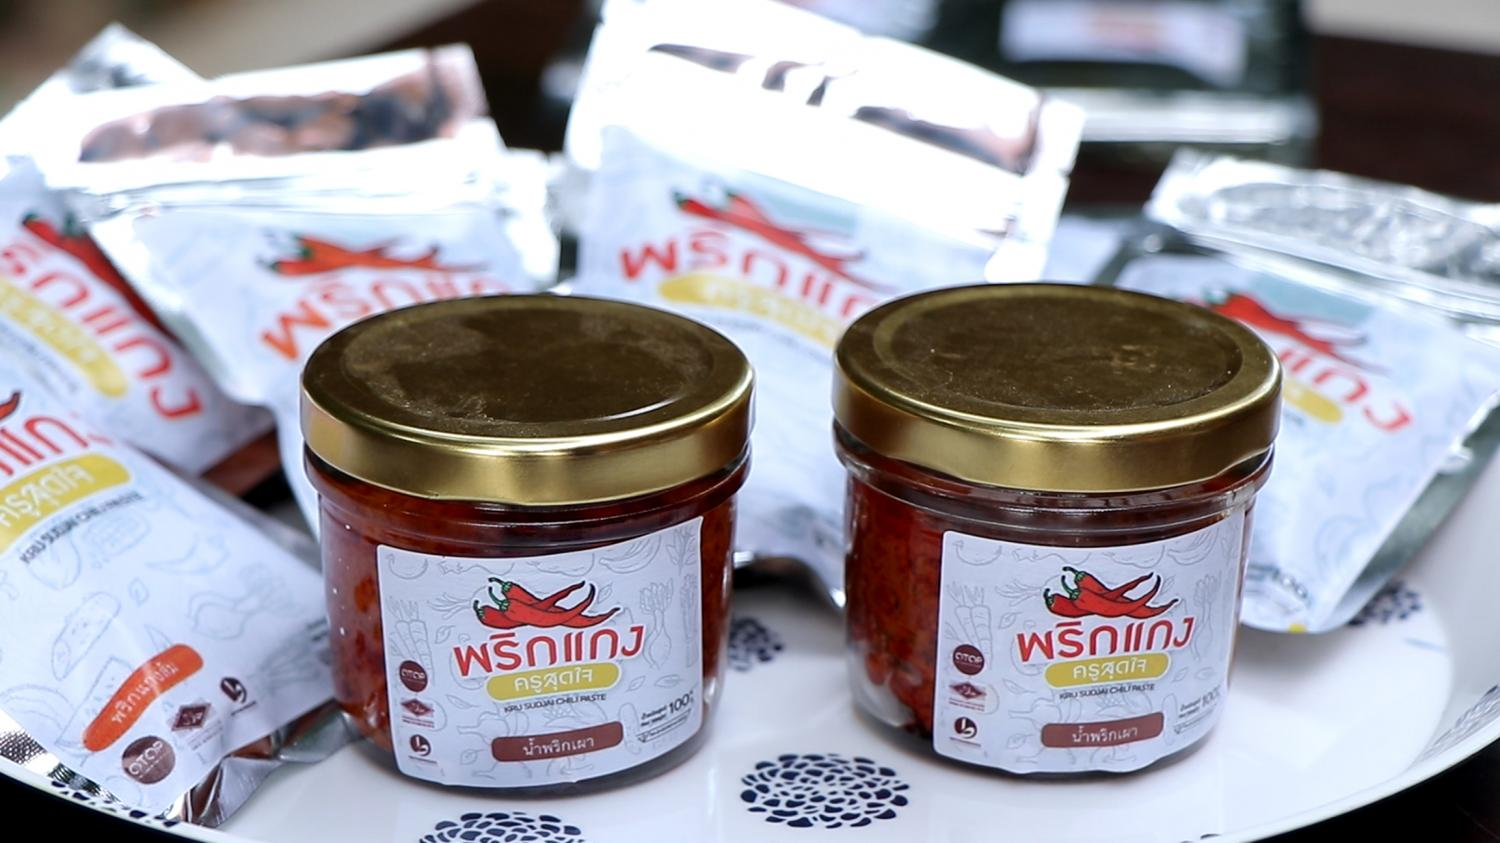 Chilli paste, produced using community-grown vegetables and herbs, is packed in jars and marketed under the brand Prik Kaeng Khru Sudjai (Teacher Sudjai's Curry Paste).